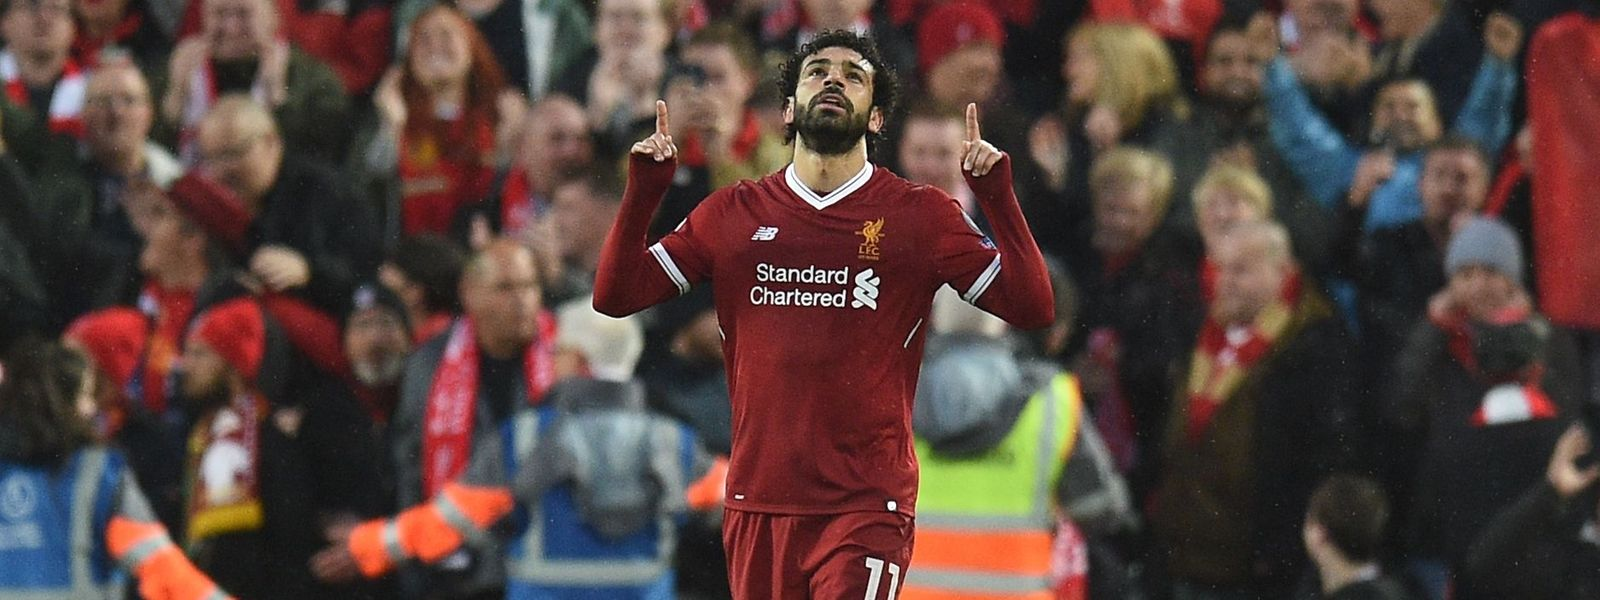 Can Mohamed Salah Win The Ballon d Or?